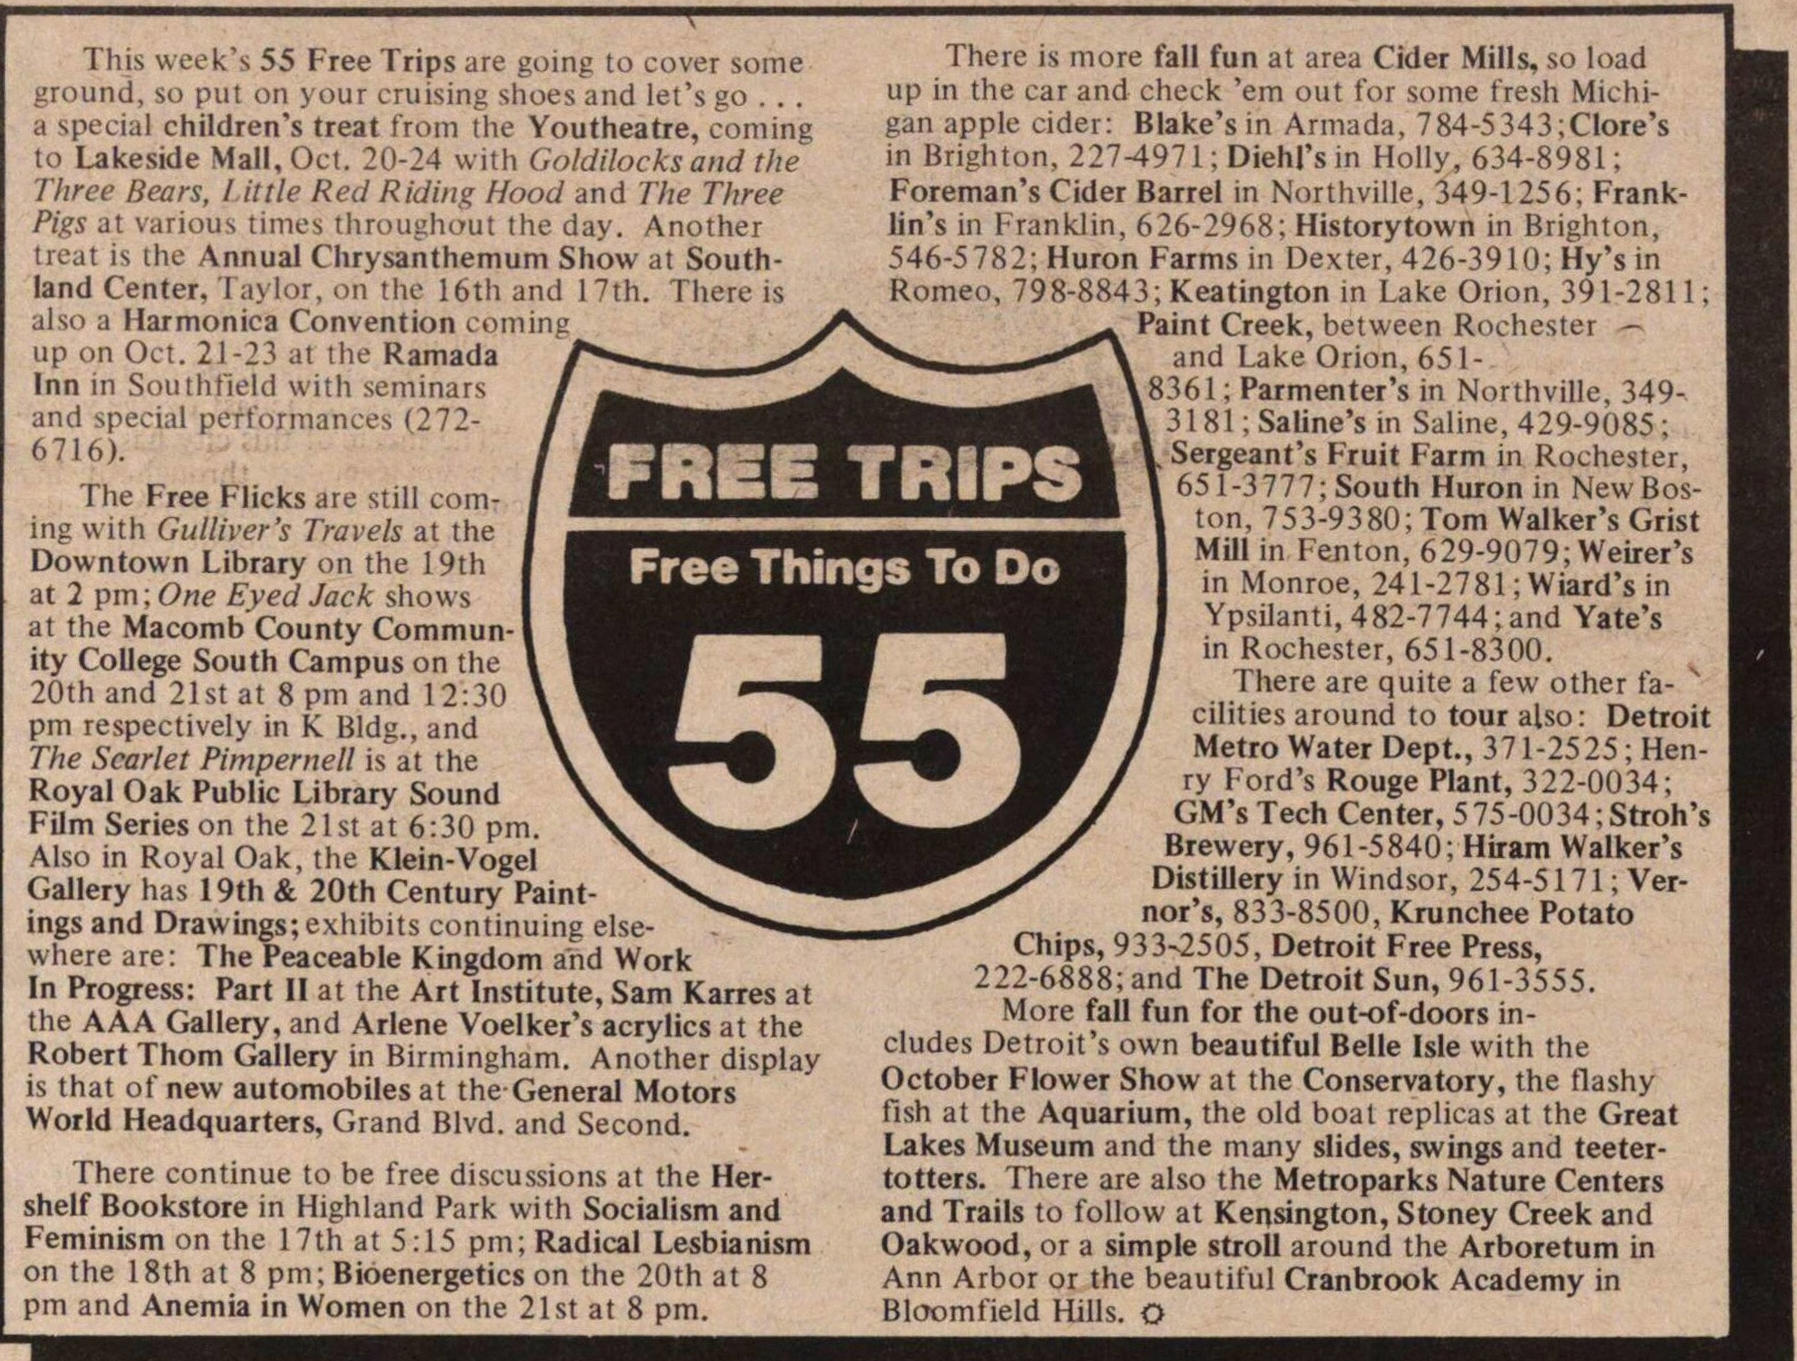 Free Trips Free Things To Do 55 image